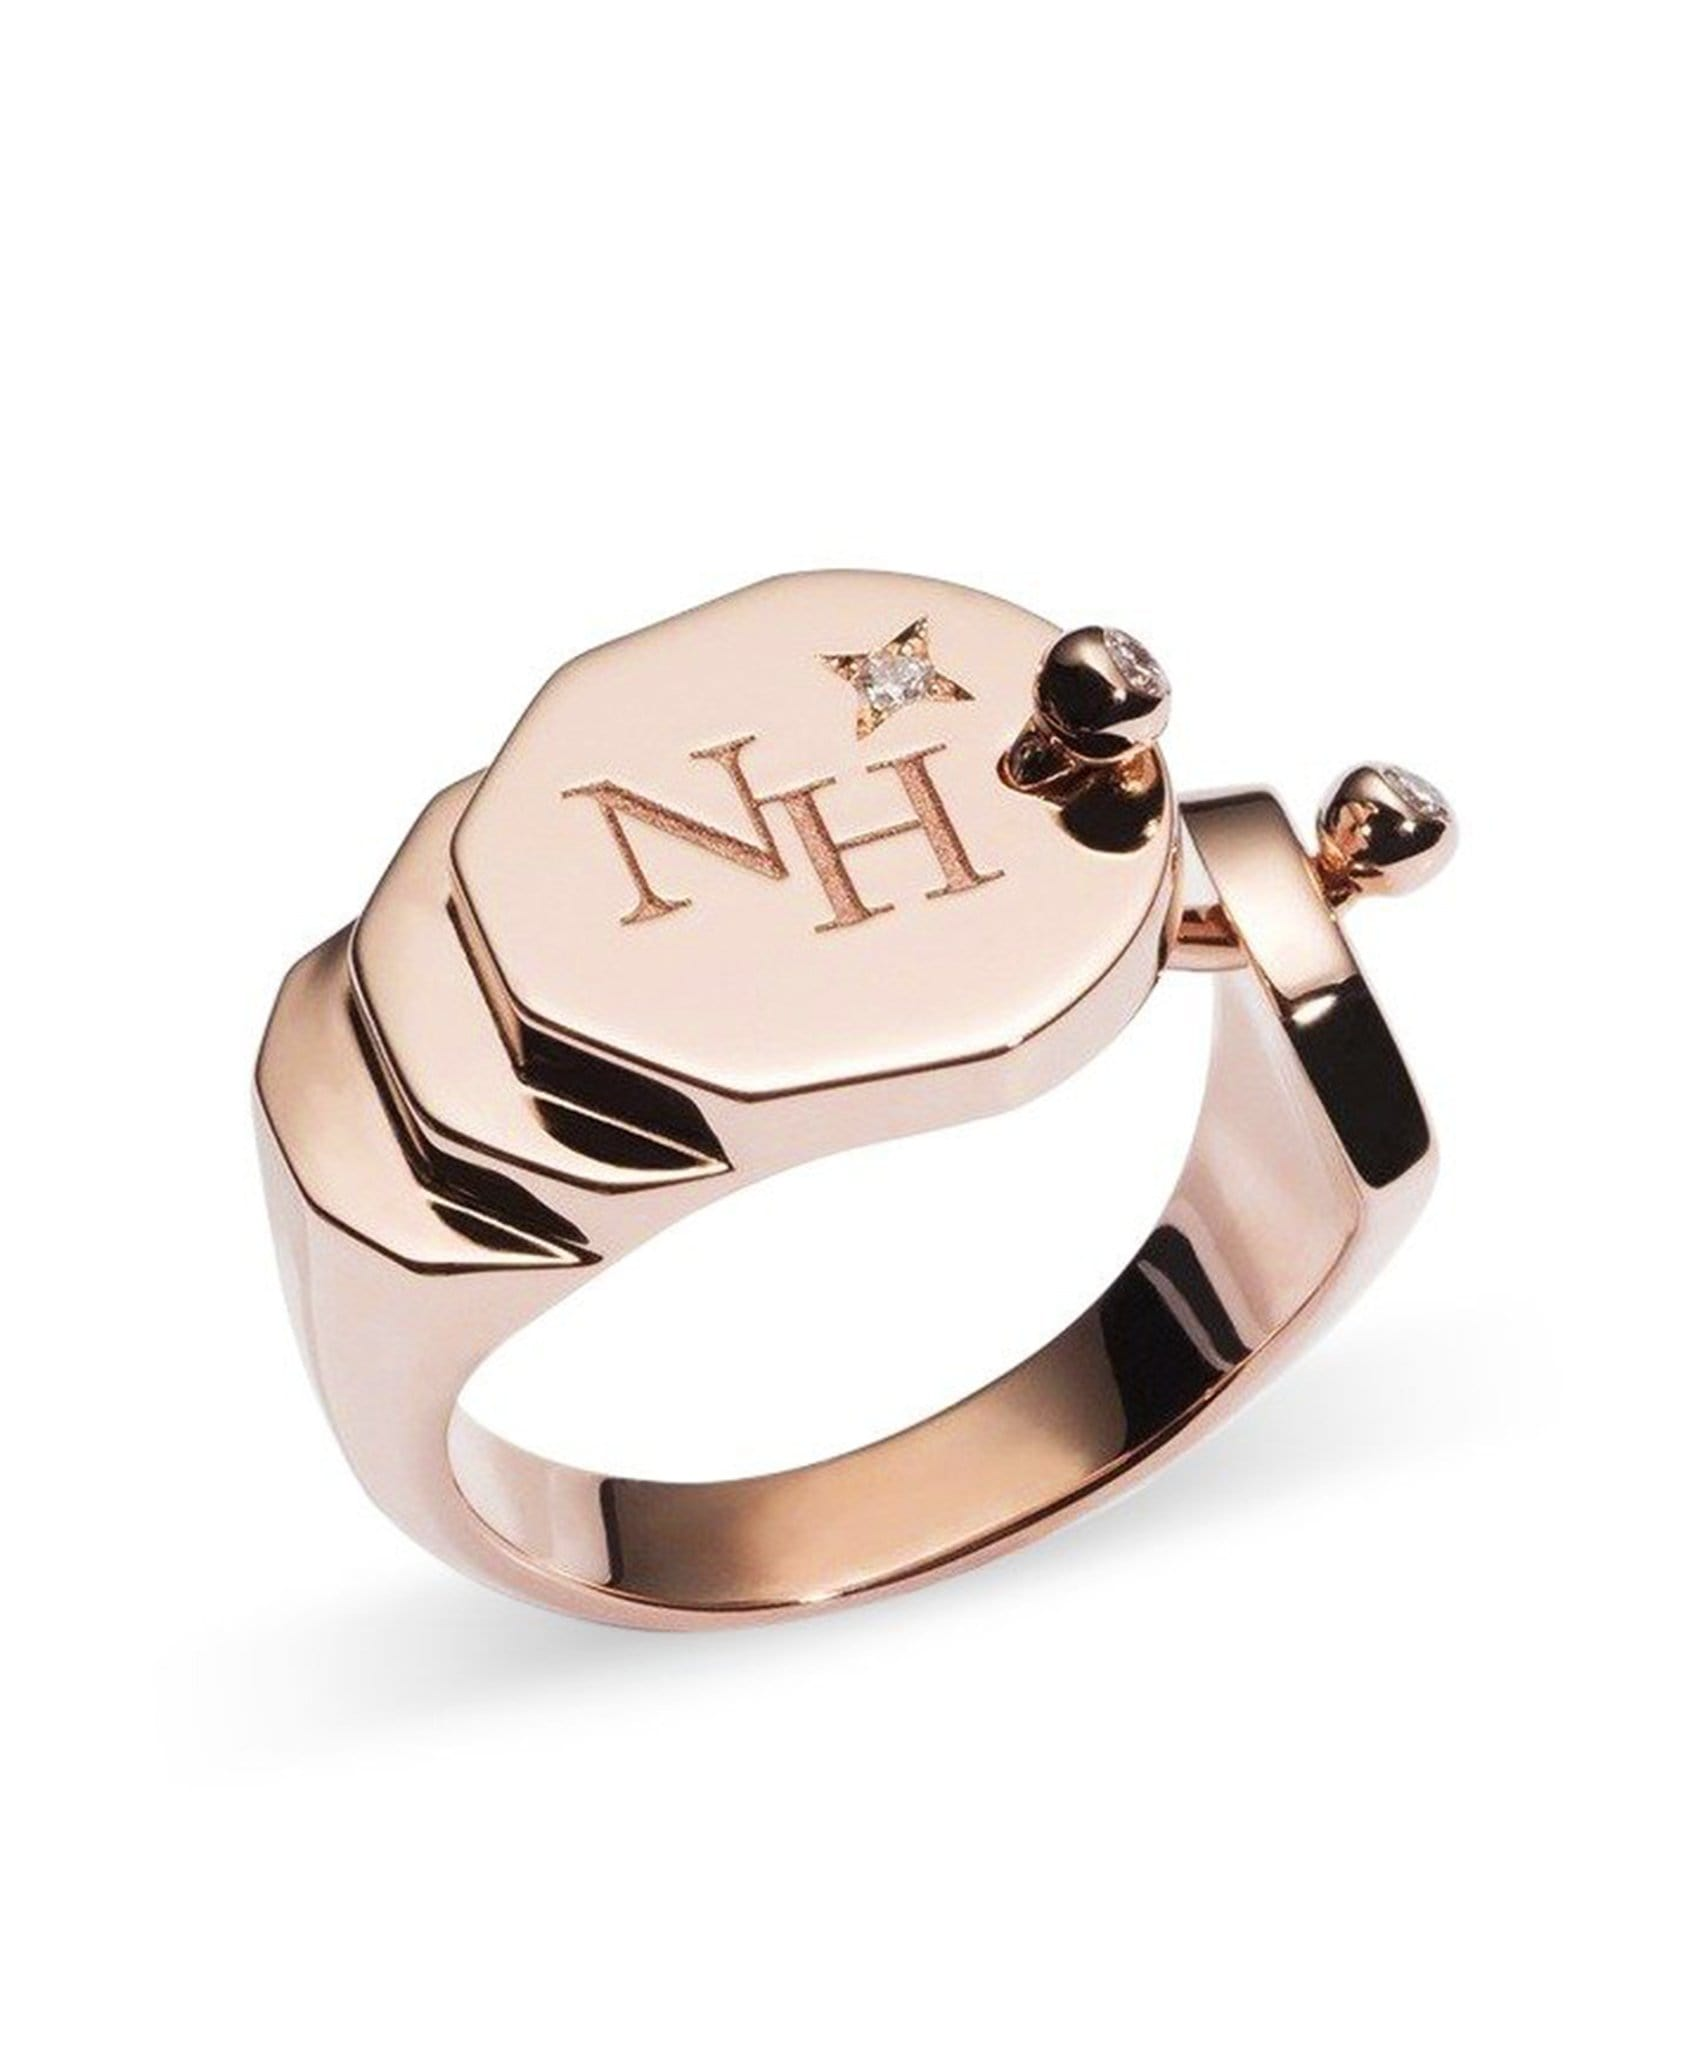 Gold Signet Ring: Discover Luxury Fine Jewelry | Nouvel Heritage || Rose Gold